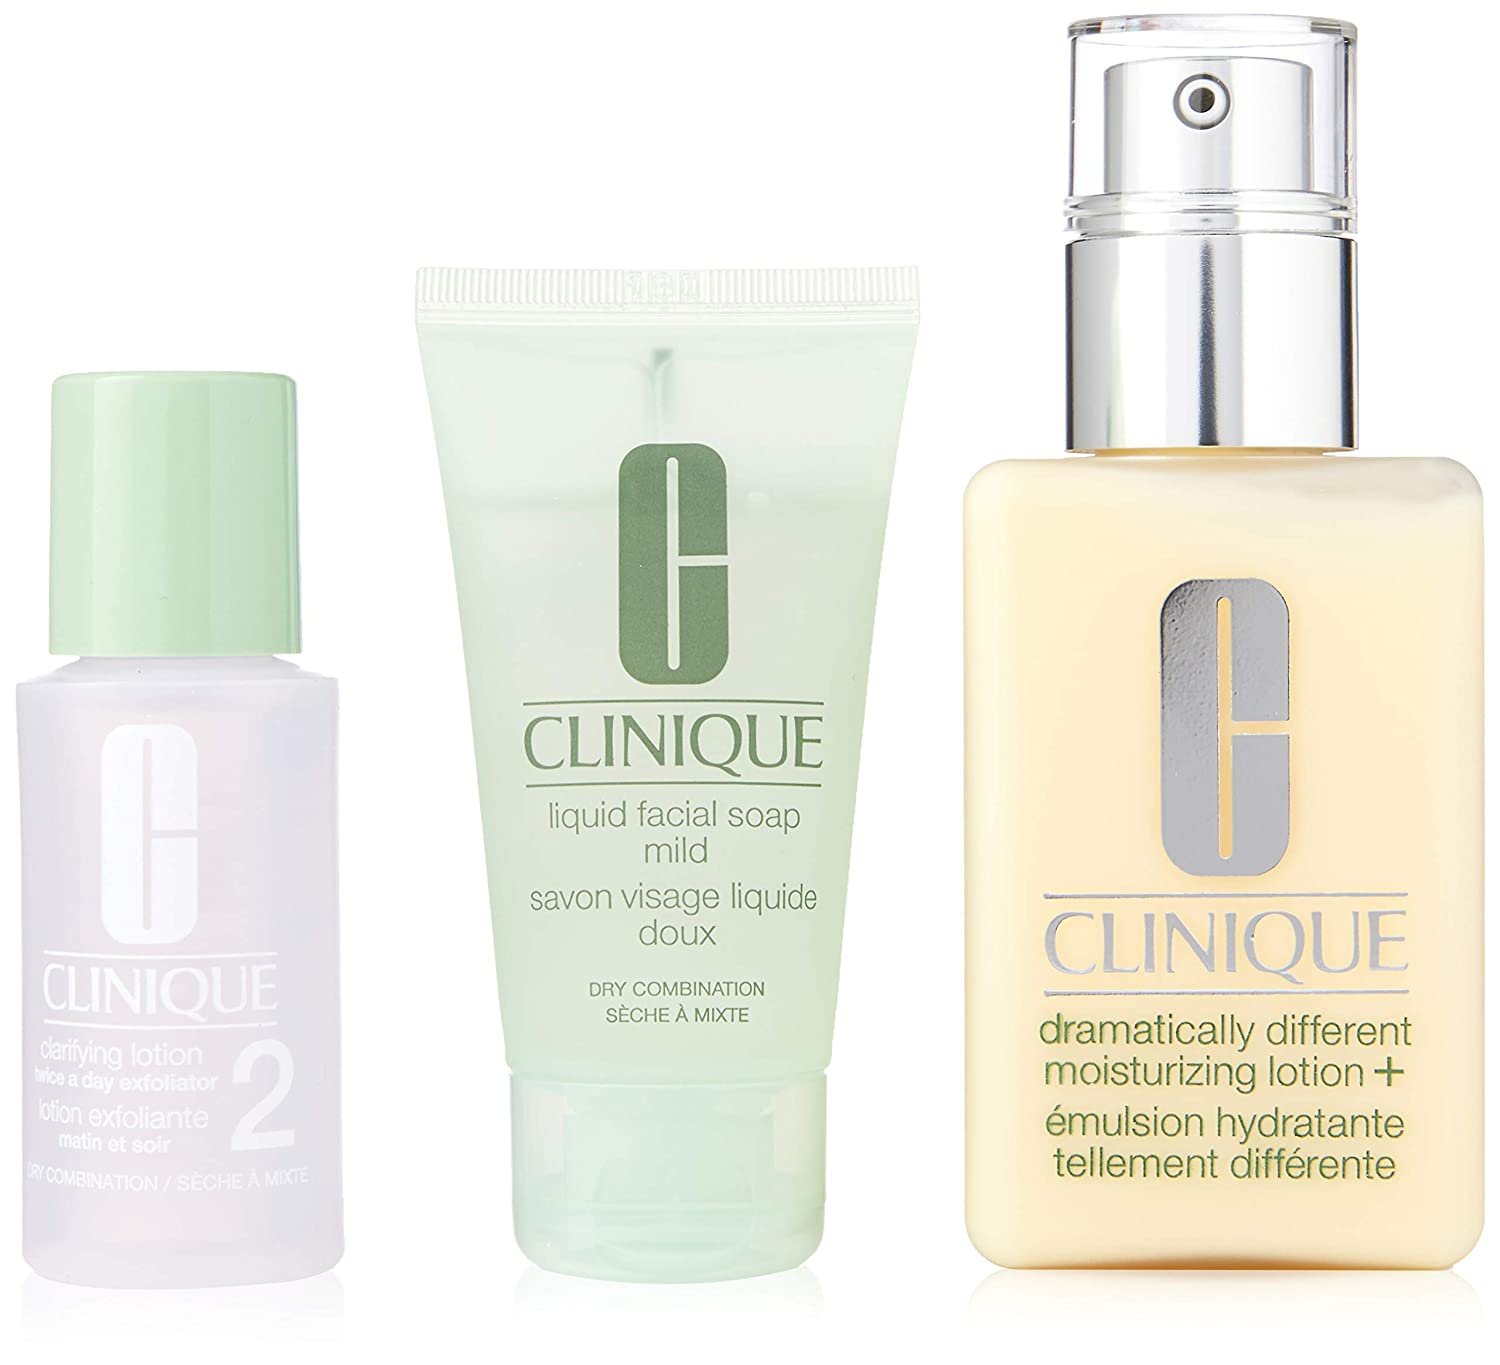 Clinique 3 Piece 3 Step Skin Care Introduction Kit for Unisex, Dry Combination Skin Type